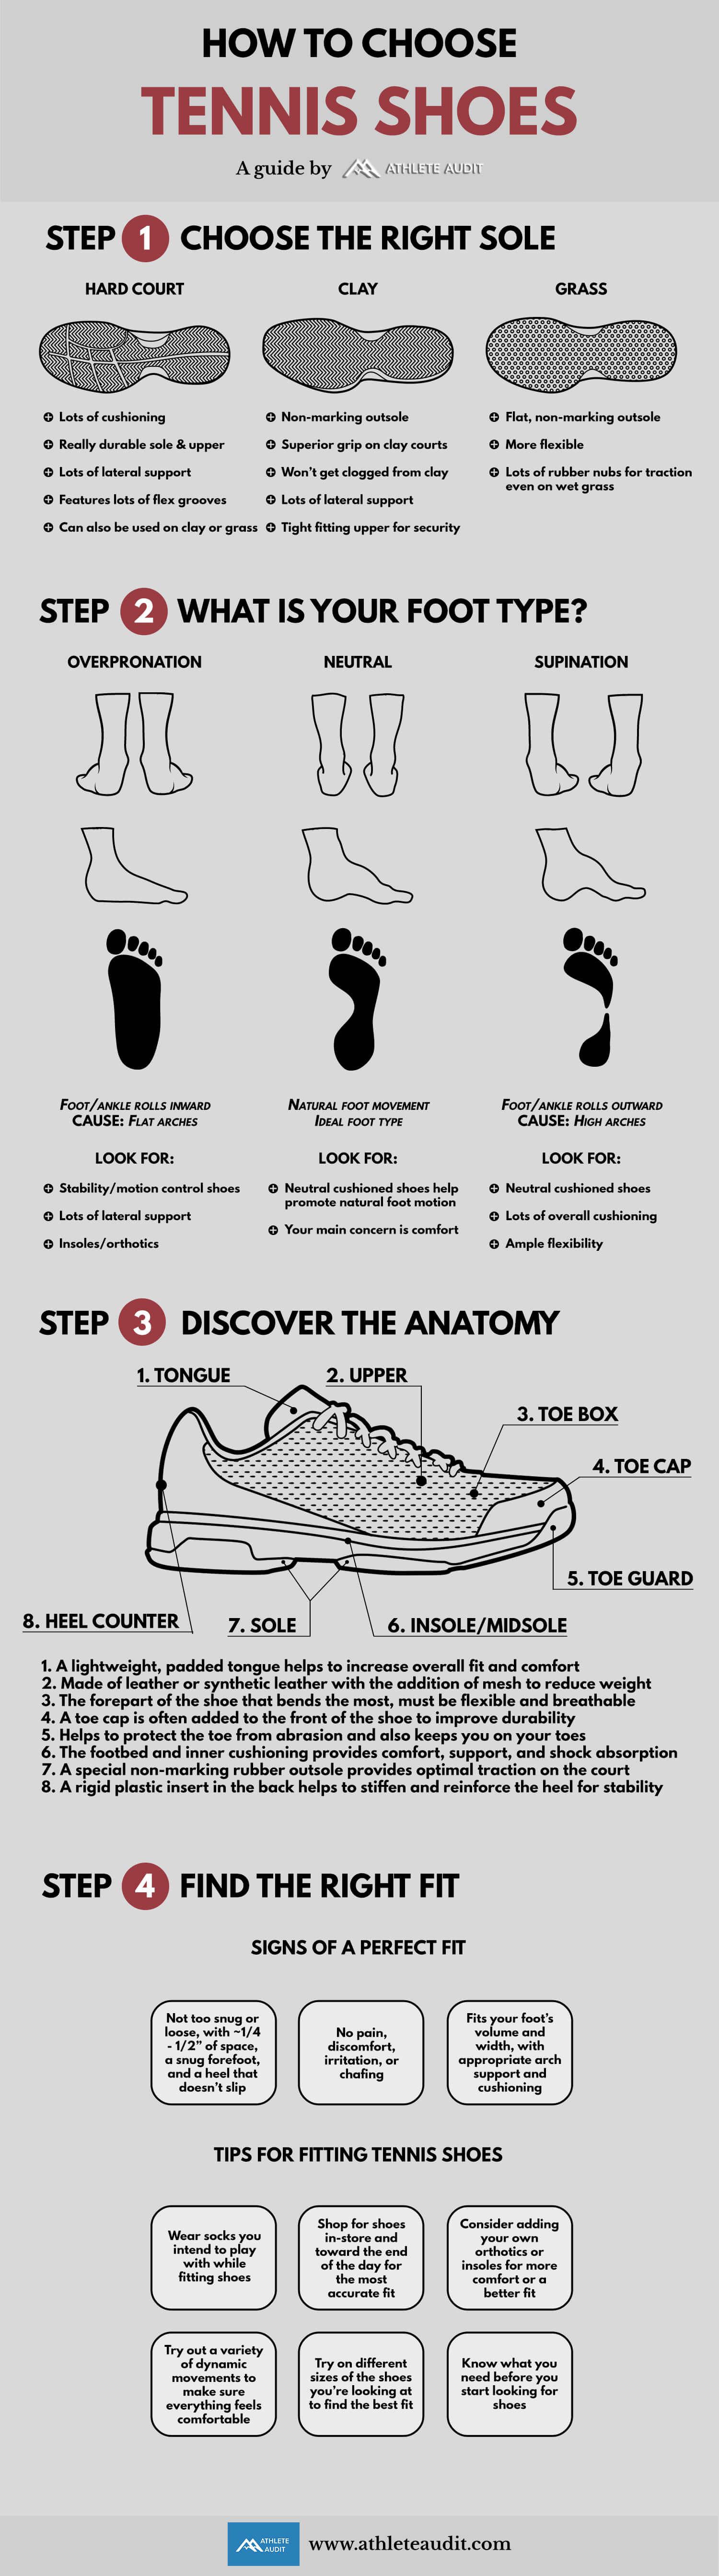 How to Choose Tennis Shoes - Infographic by Athlete Audit